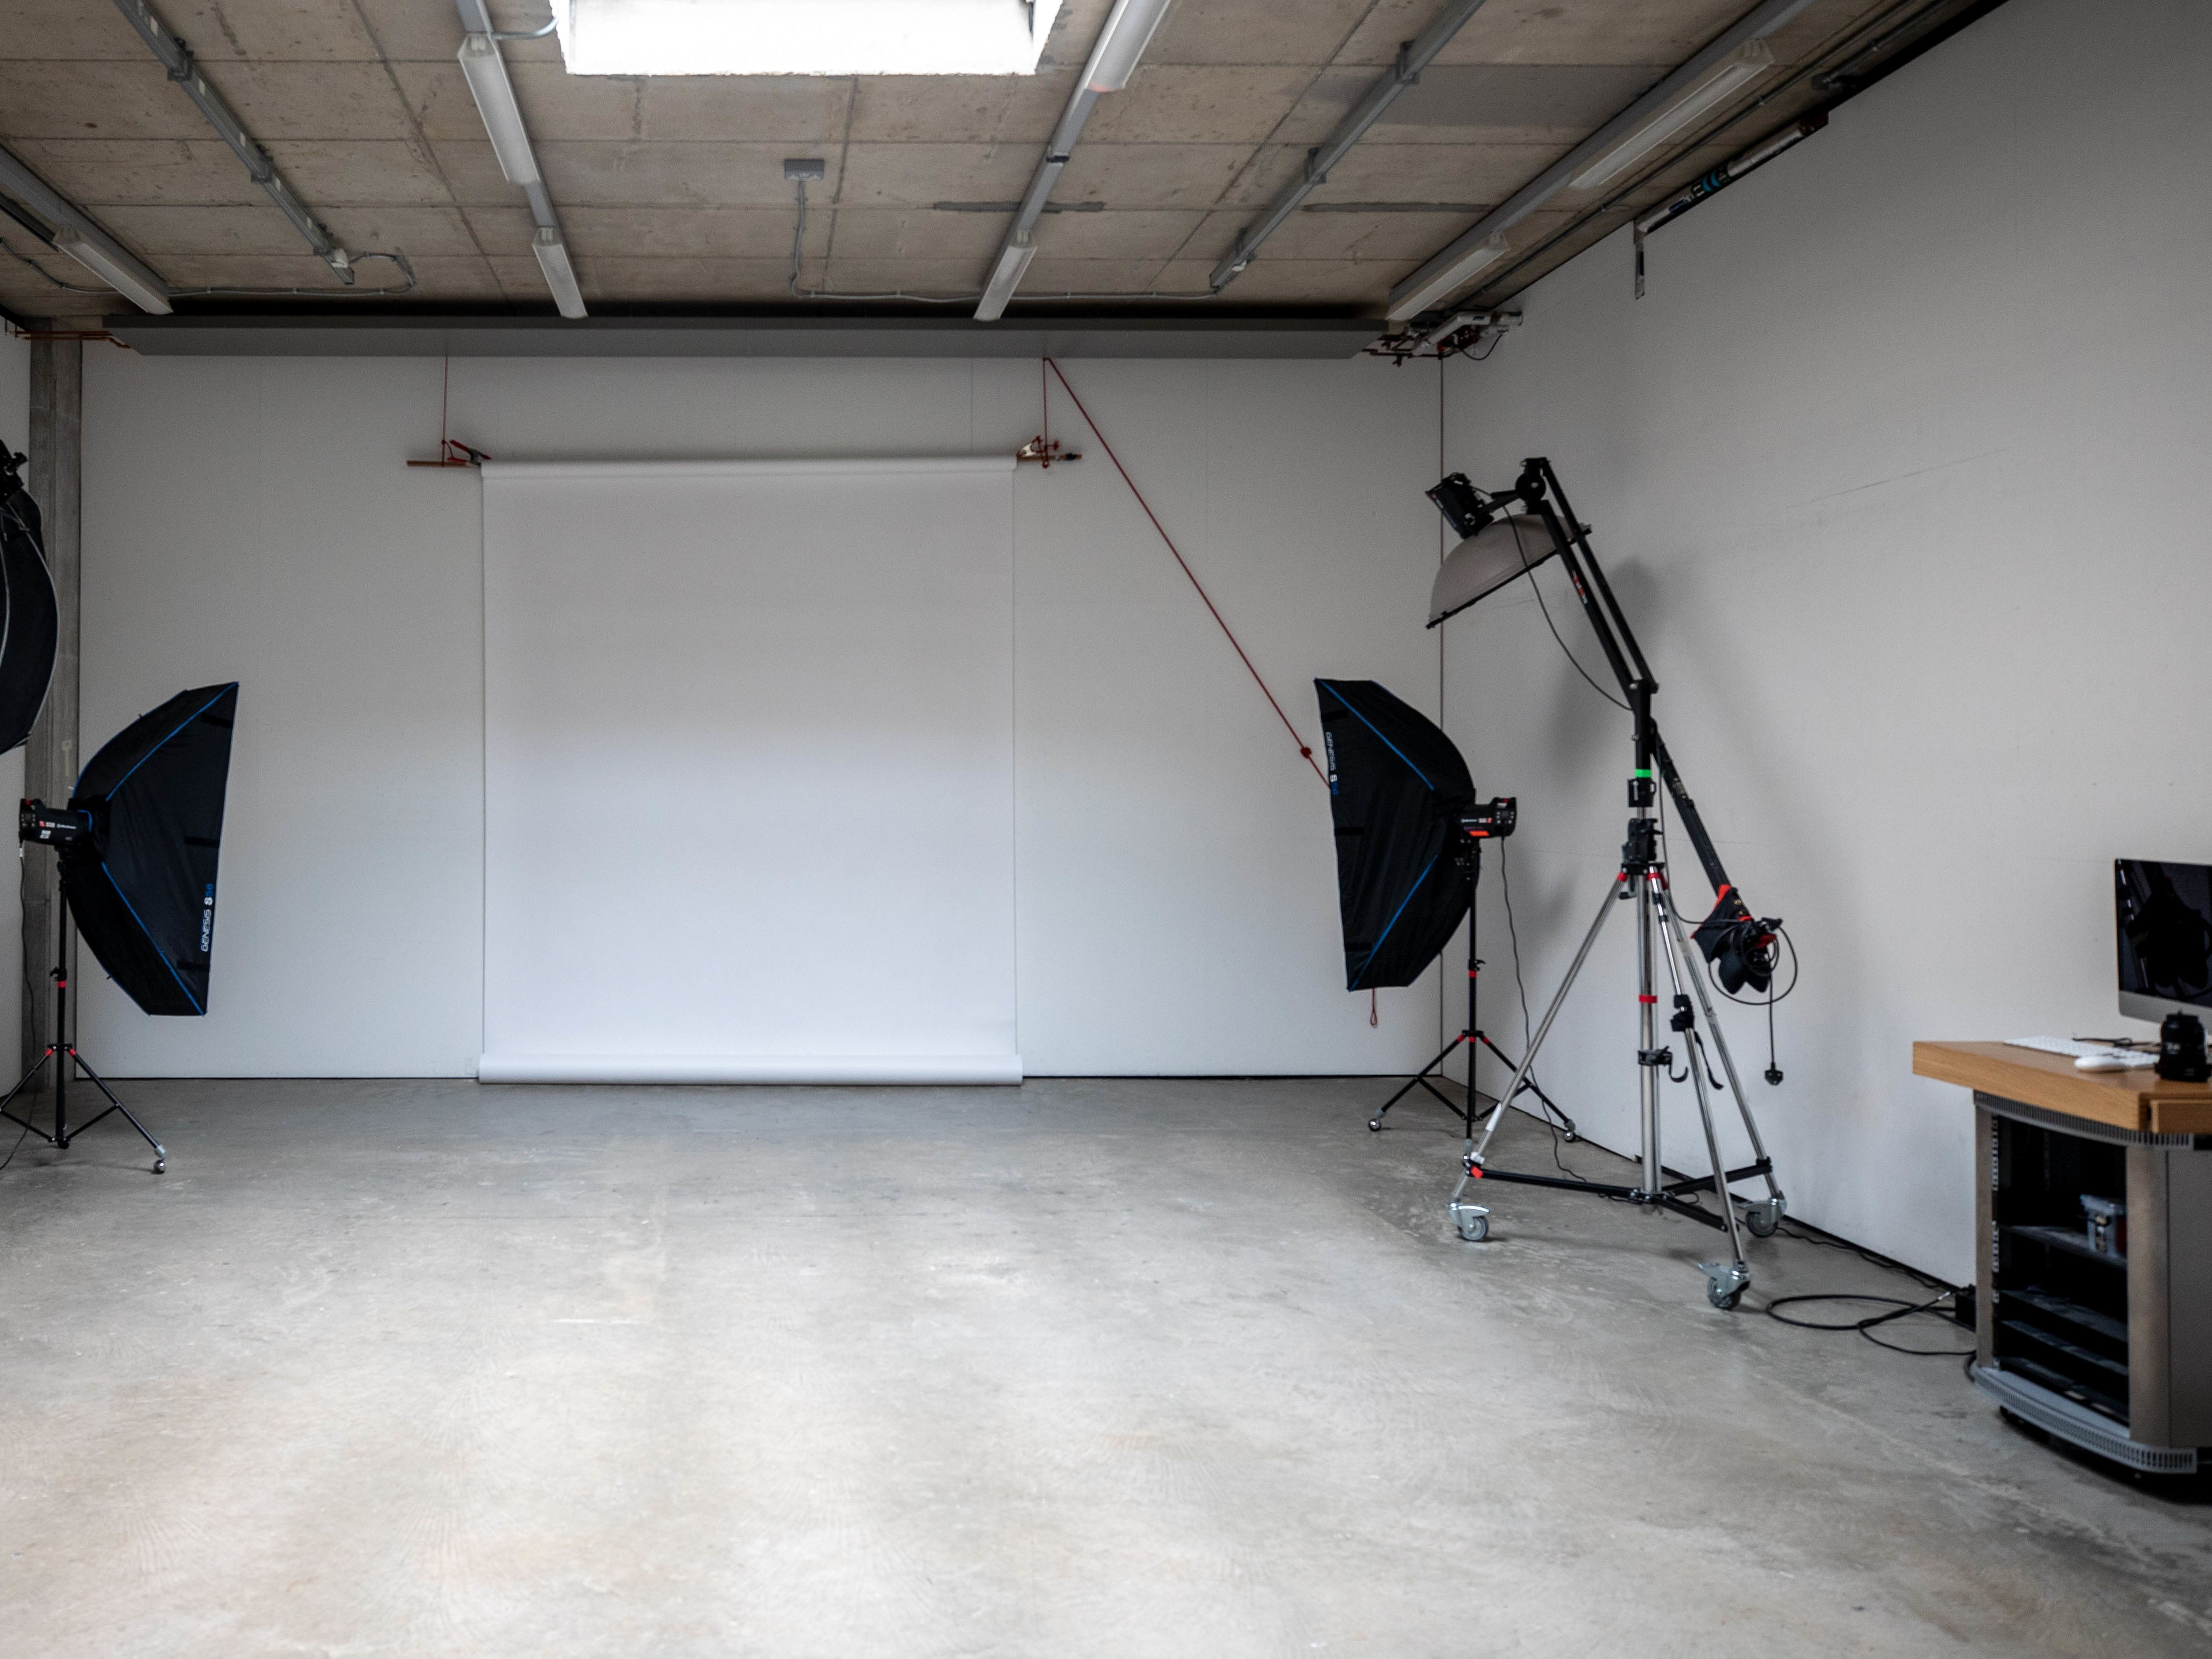 A photography studio